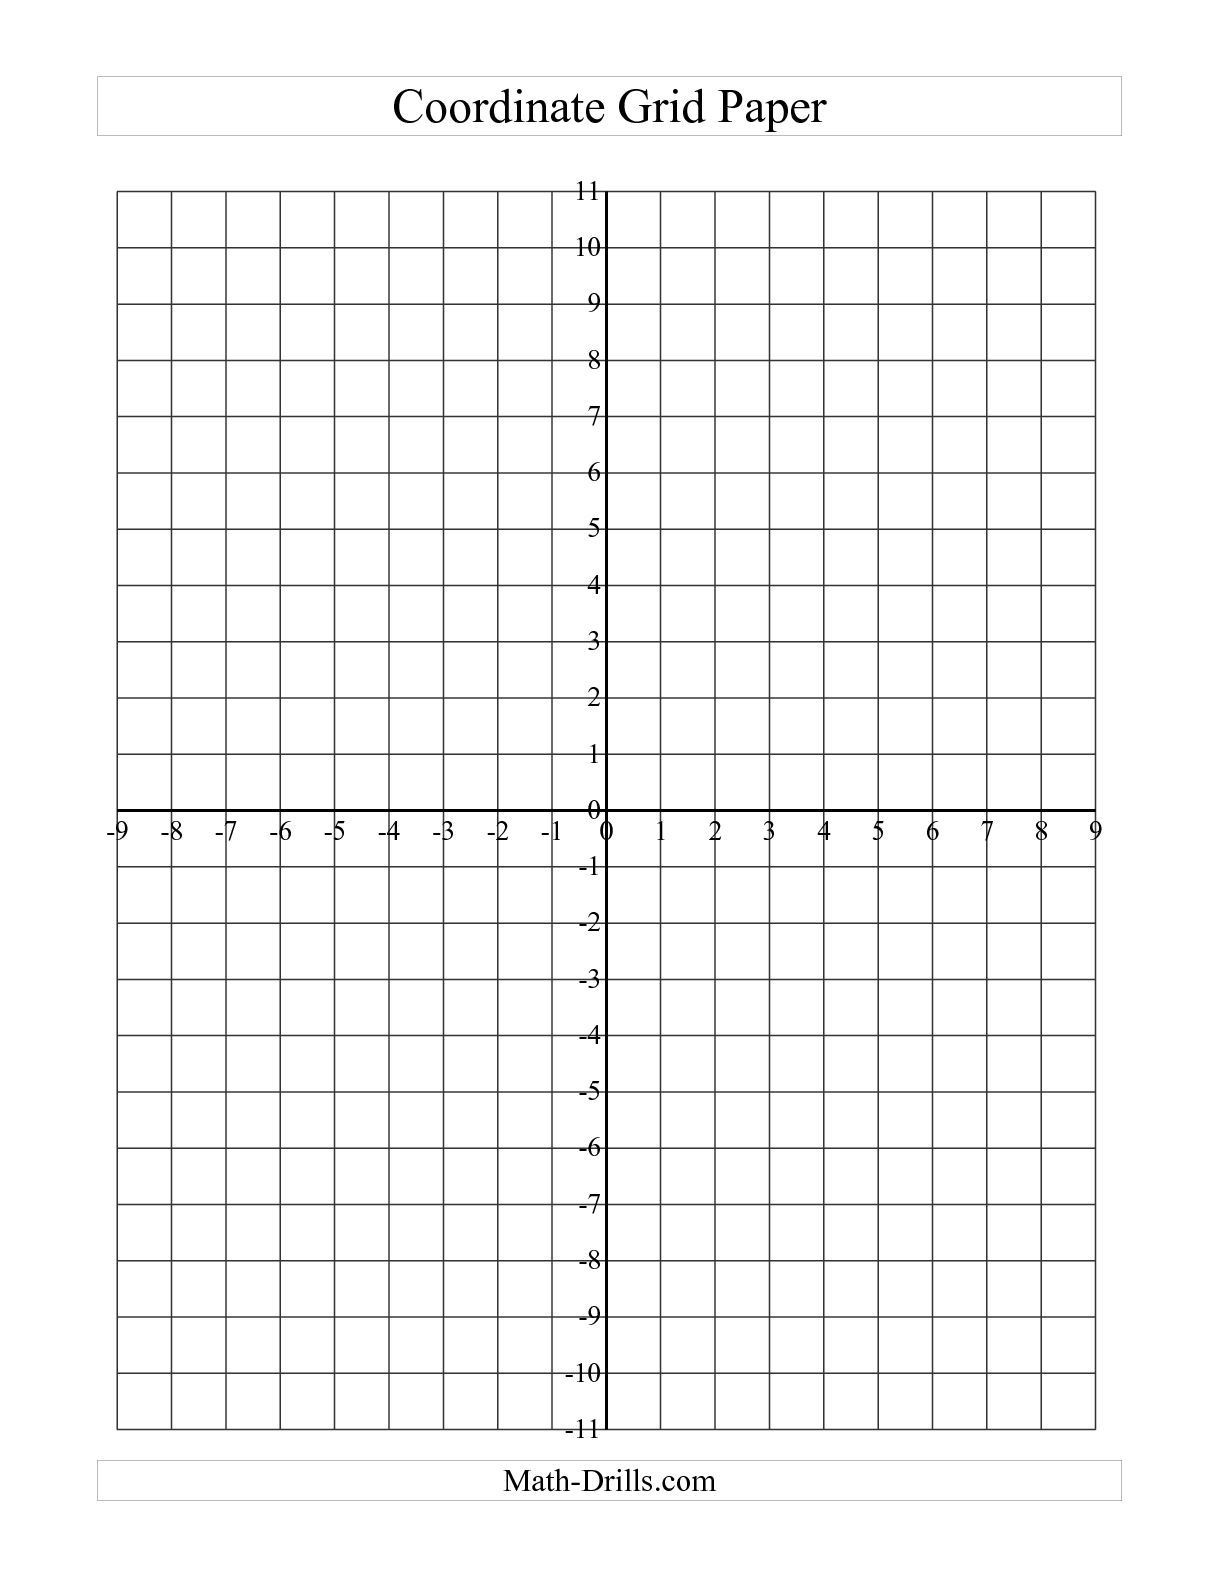 Coordinate Grid Worksheets 5th Grade Coordinate Grid Worksheets with Answers